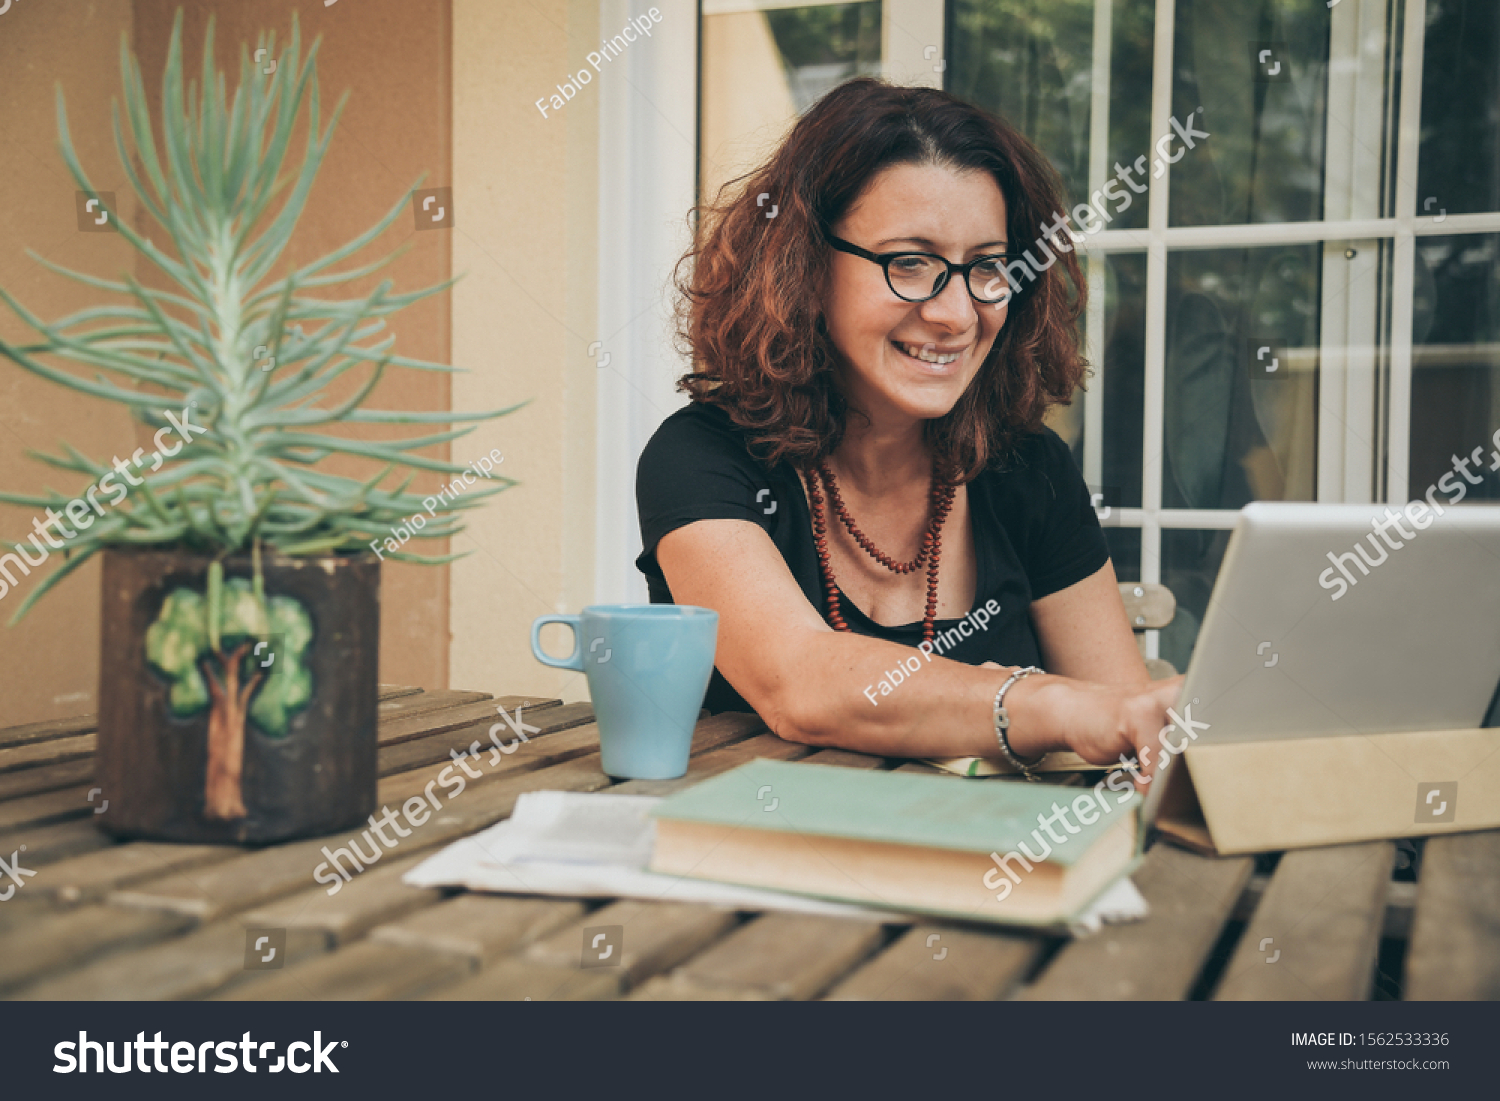 Middle aged female studying at home with books, newspaper and digital tablet pad. Woman reading a book and watching video online on new tech device. Education, modern lifestyle and leisure concept. #1562533336